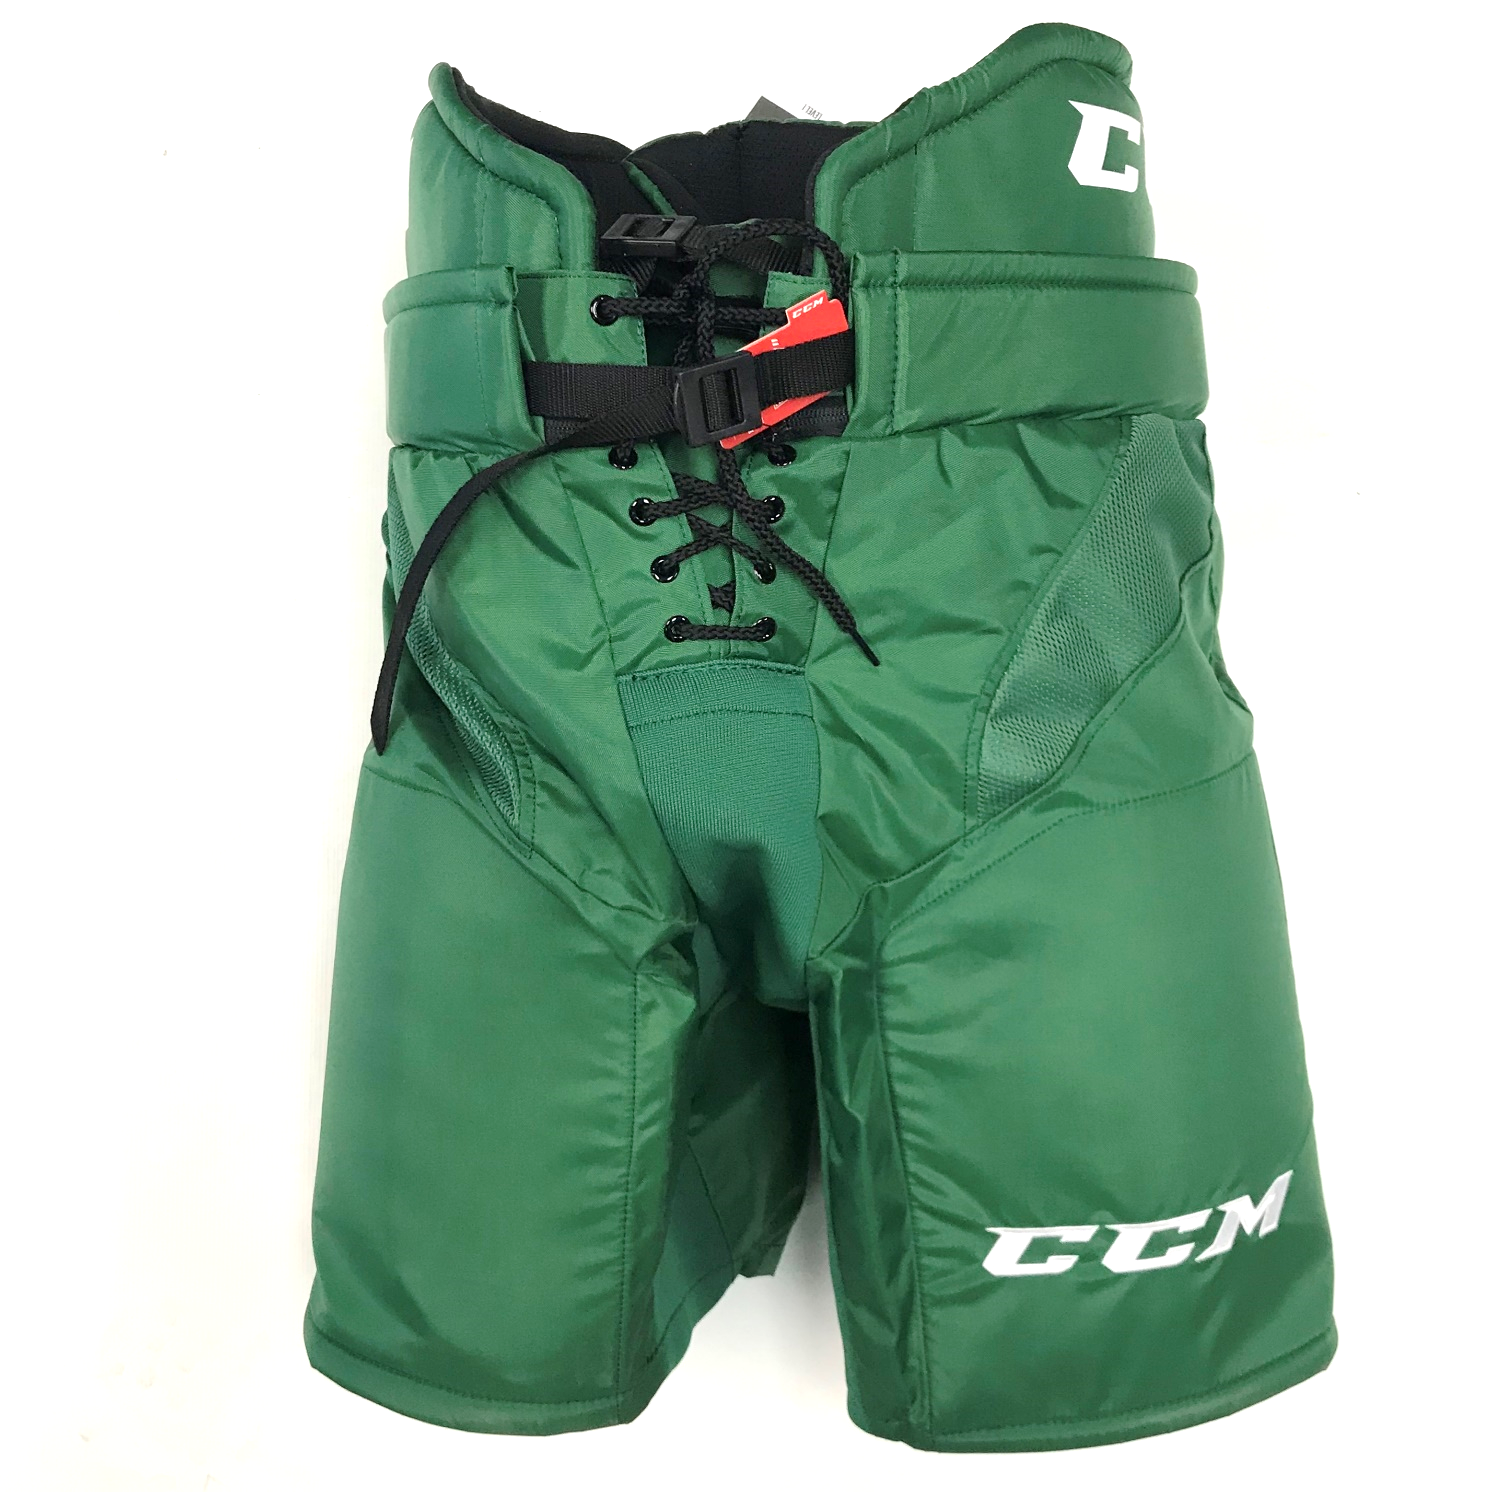 CCM Hockey Pant - New Senior Pro Stock - HP31 - Green